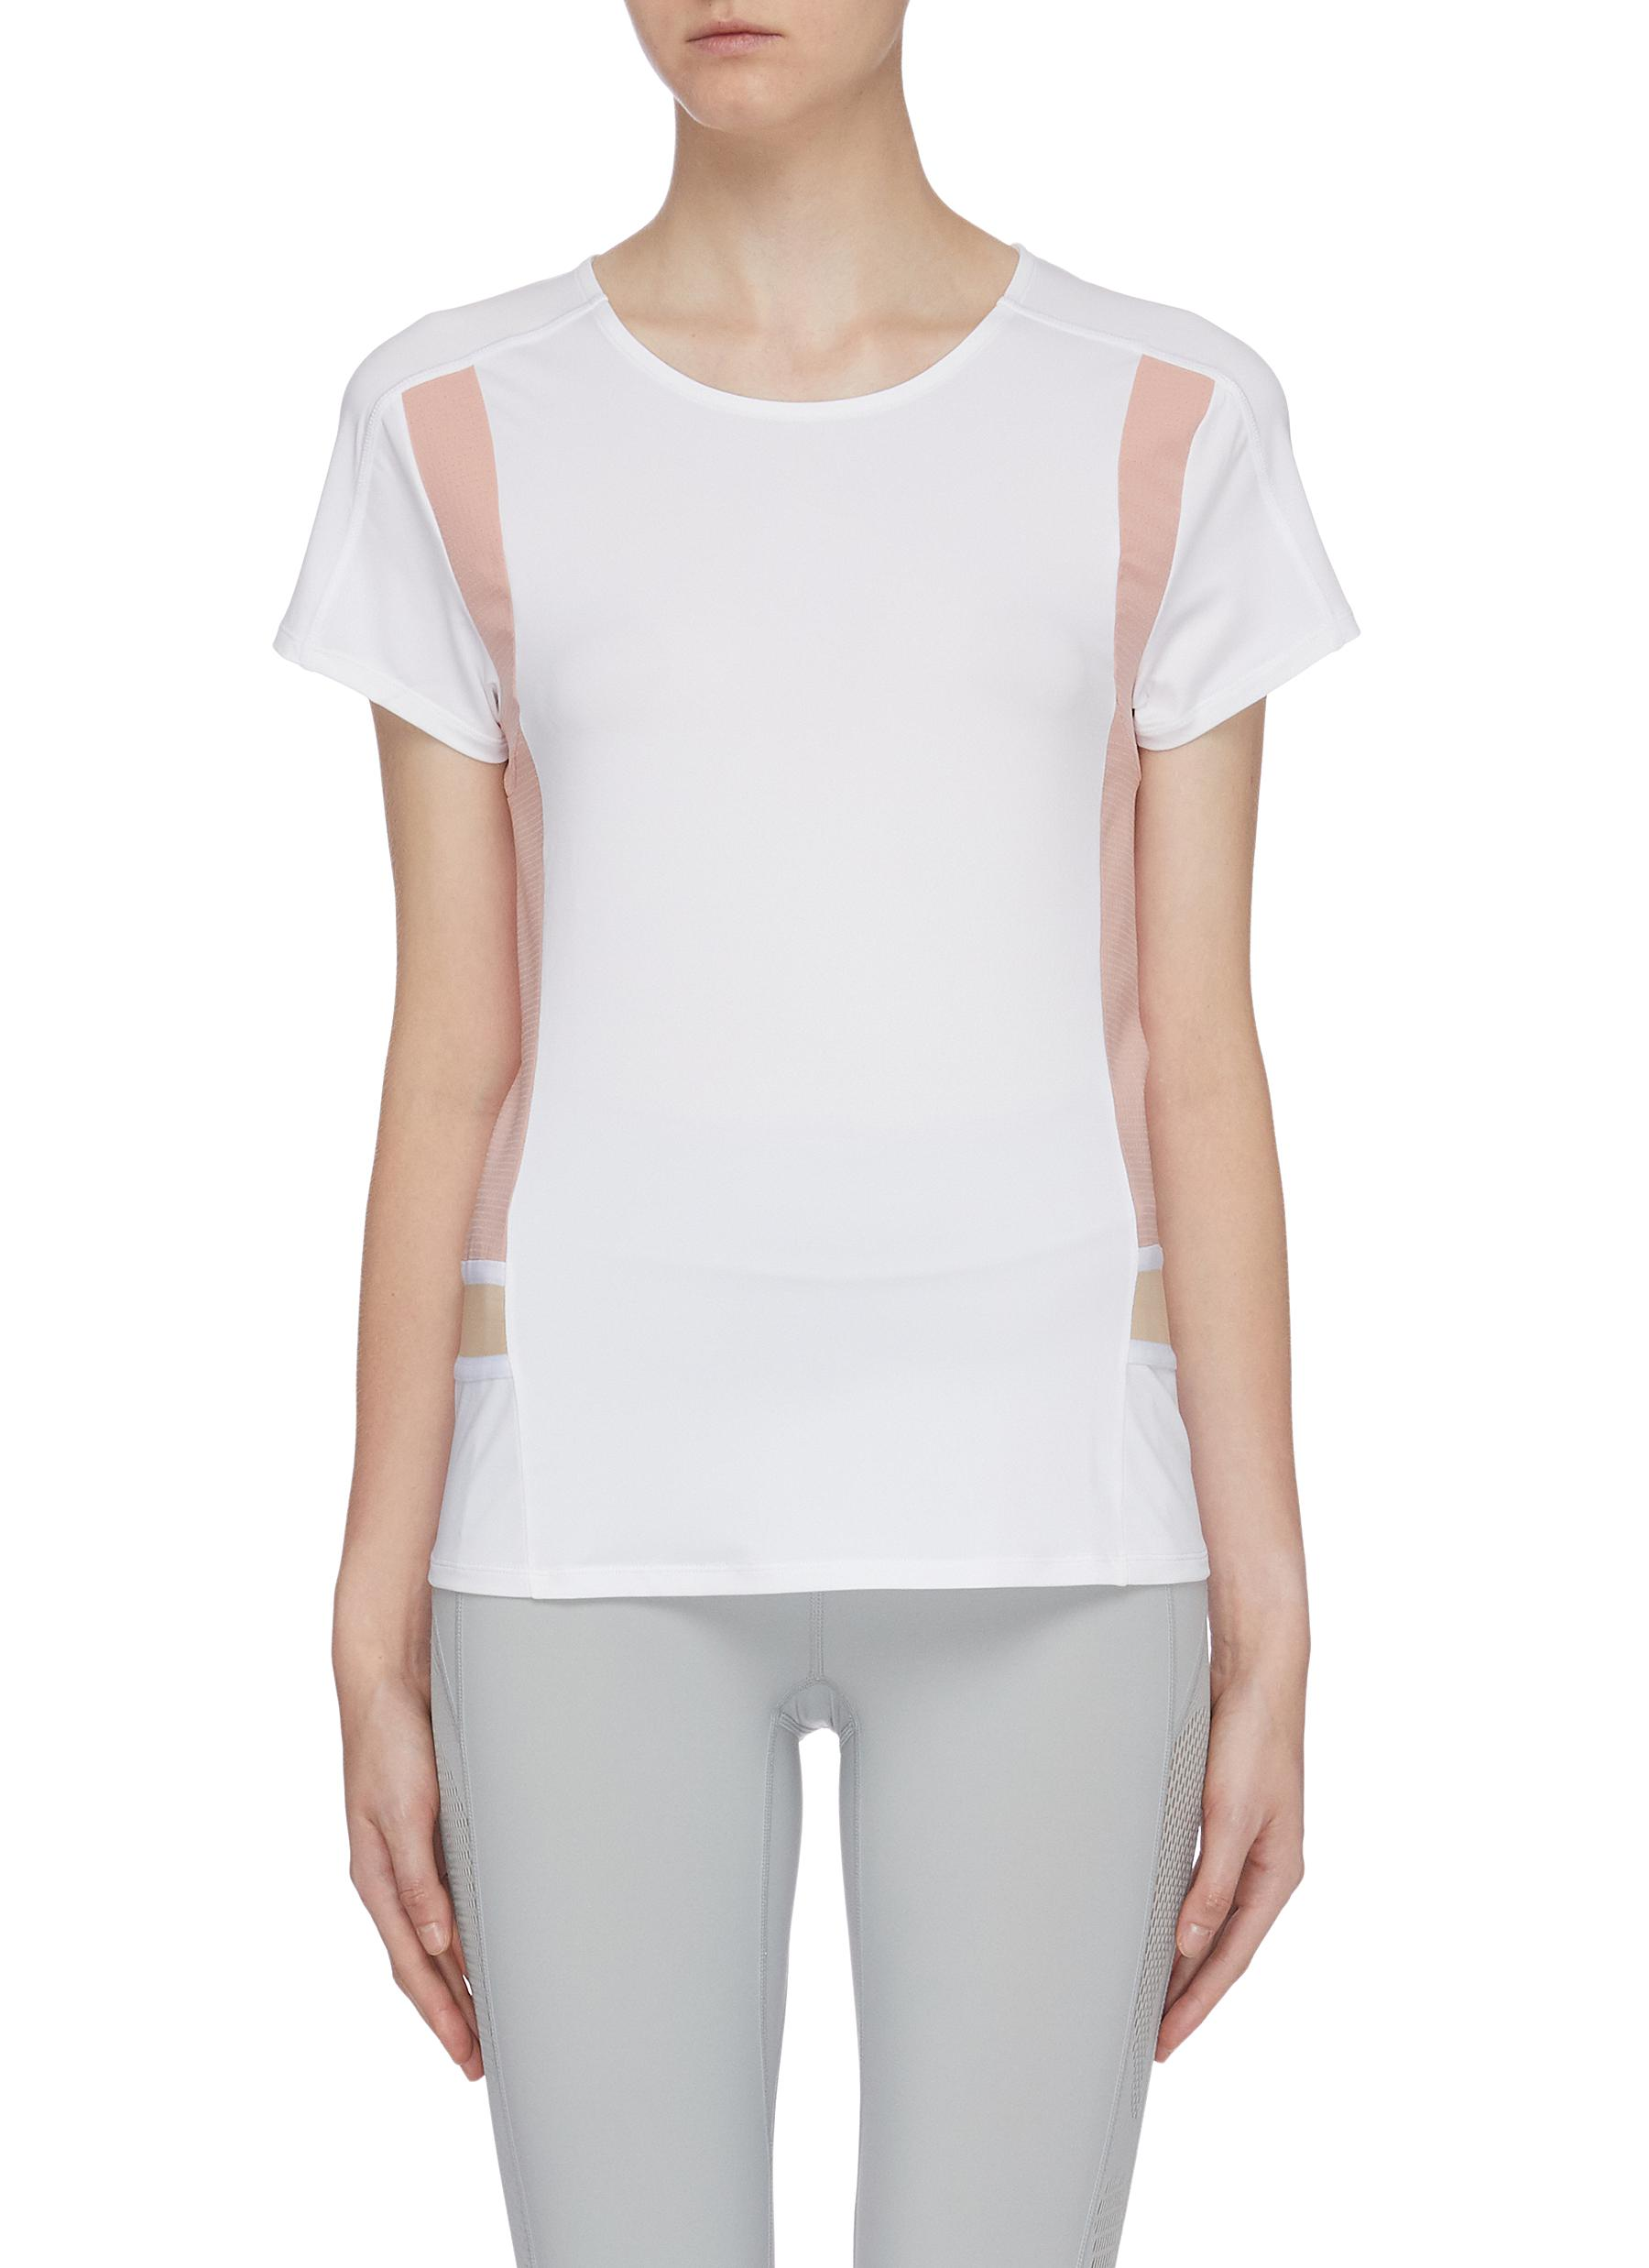 Contrast panel Particle Noofuu T-shirt by Particle Fever